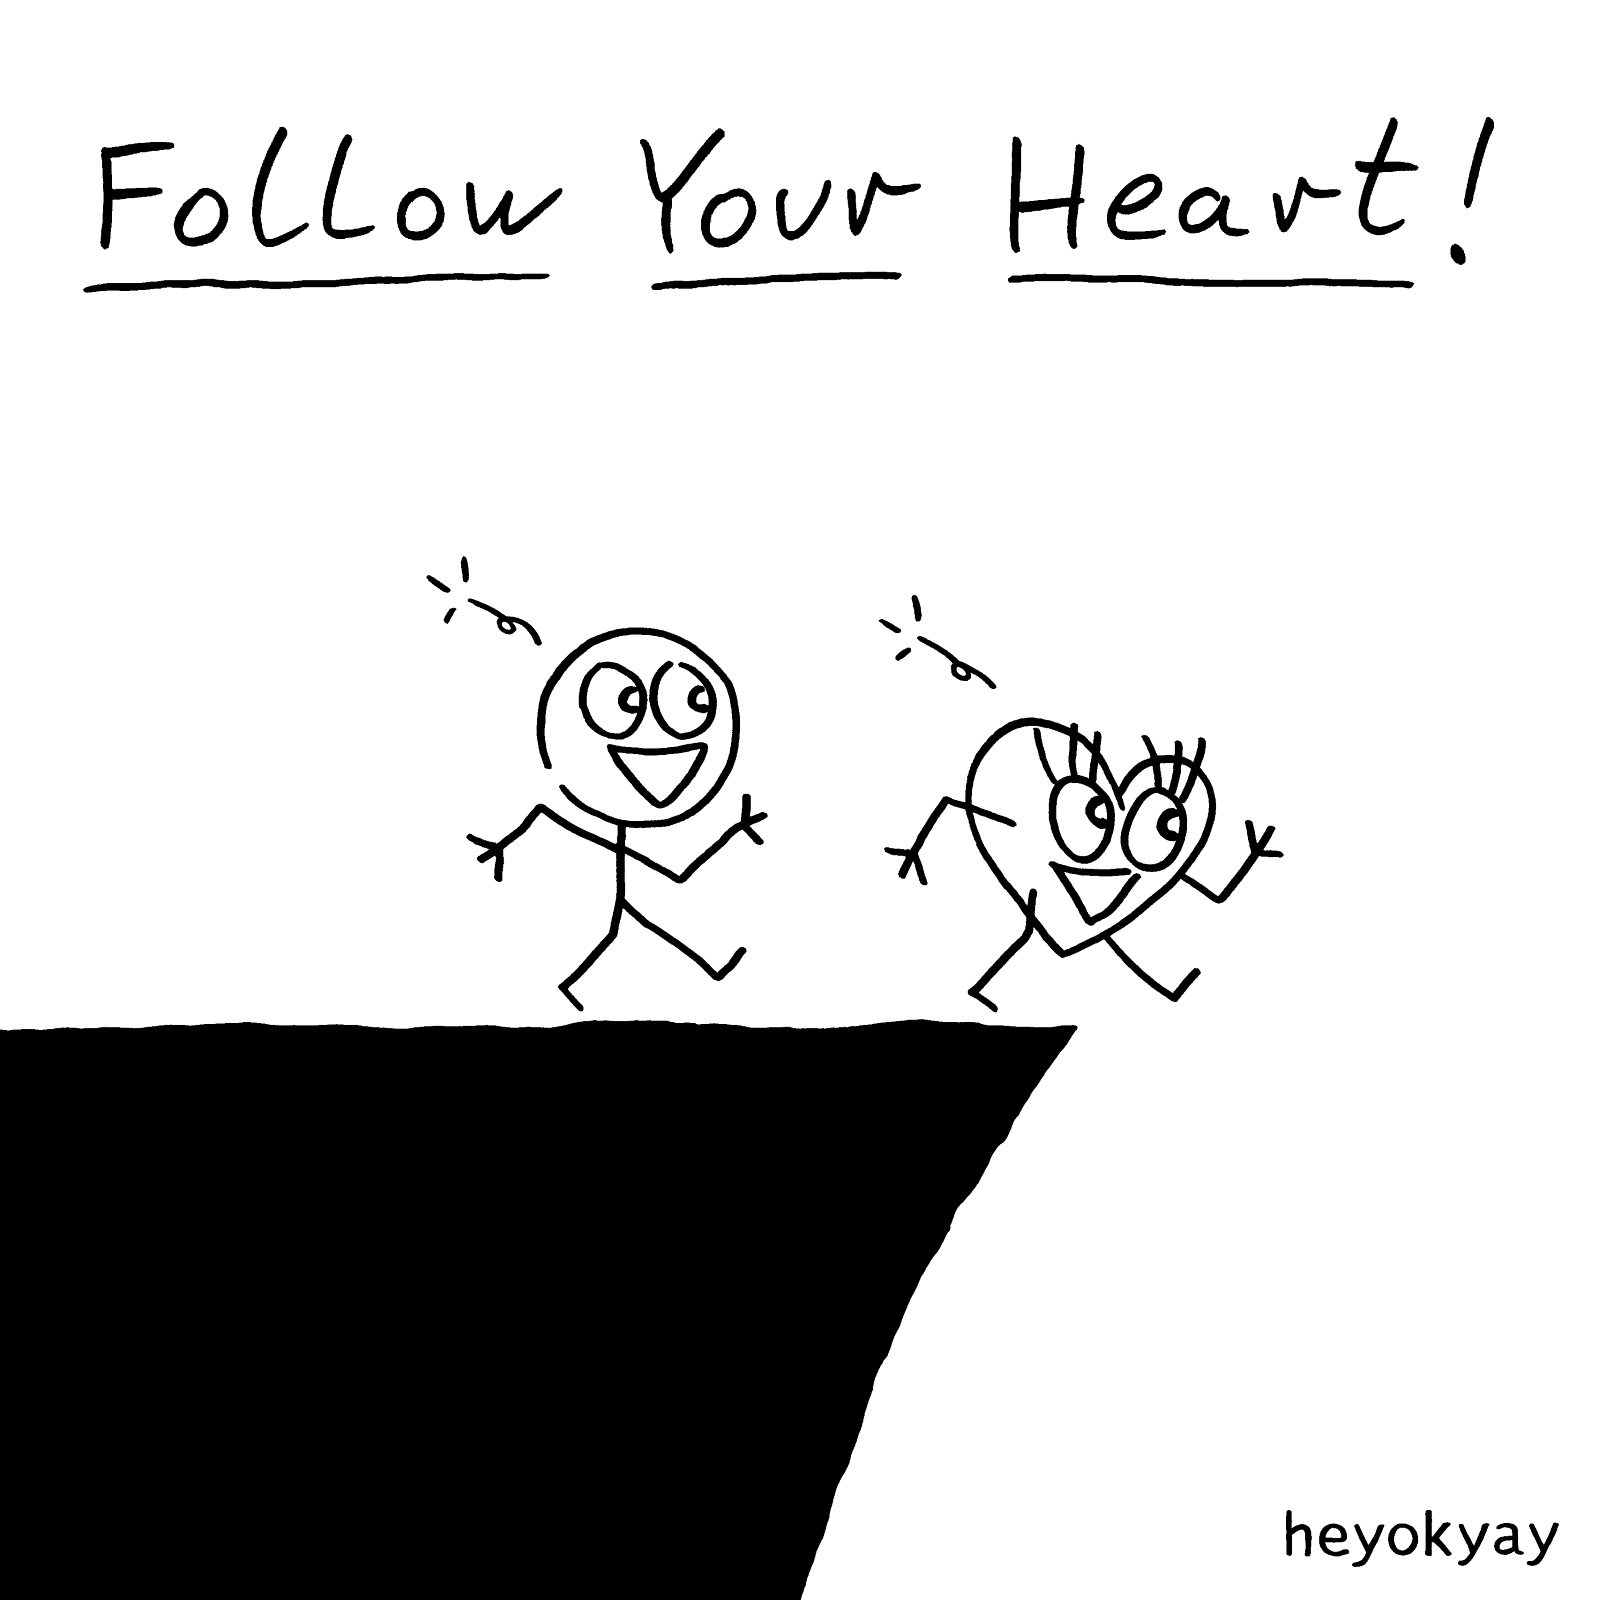 Follow Your Heart! heyokyay comic